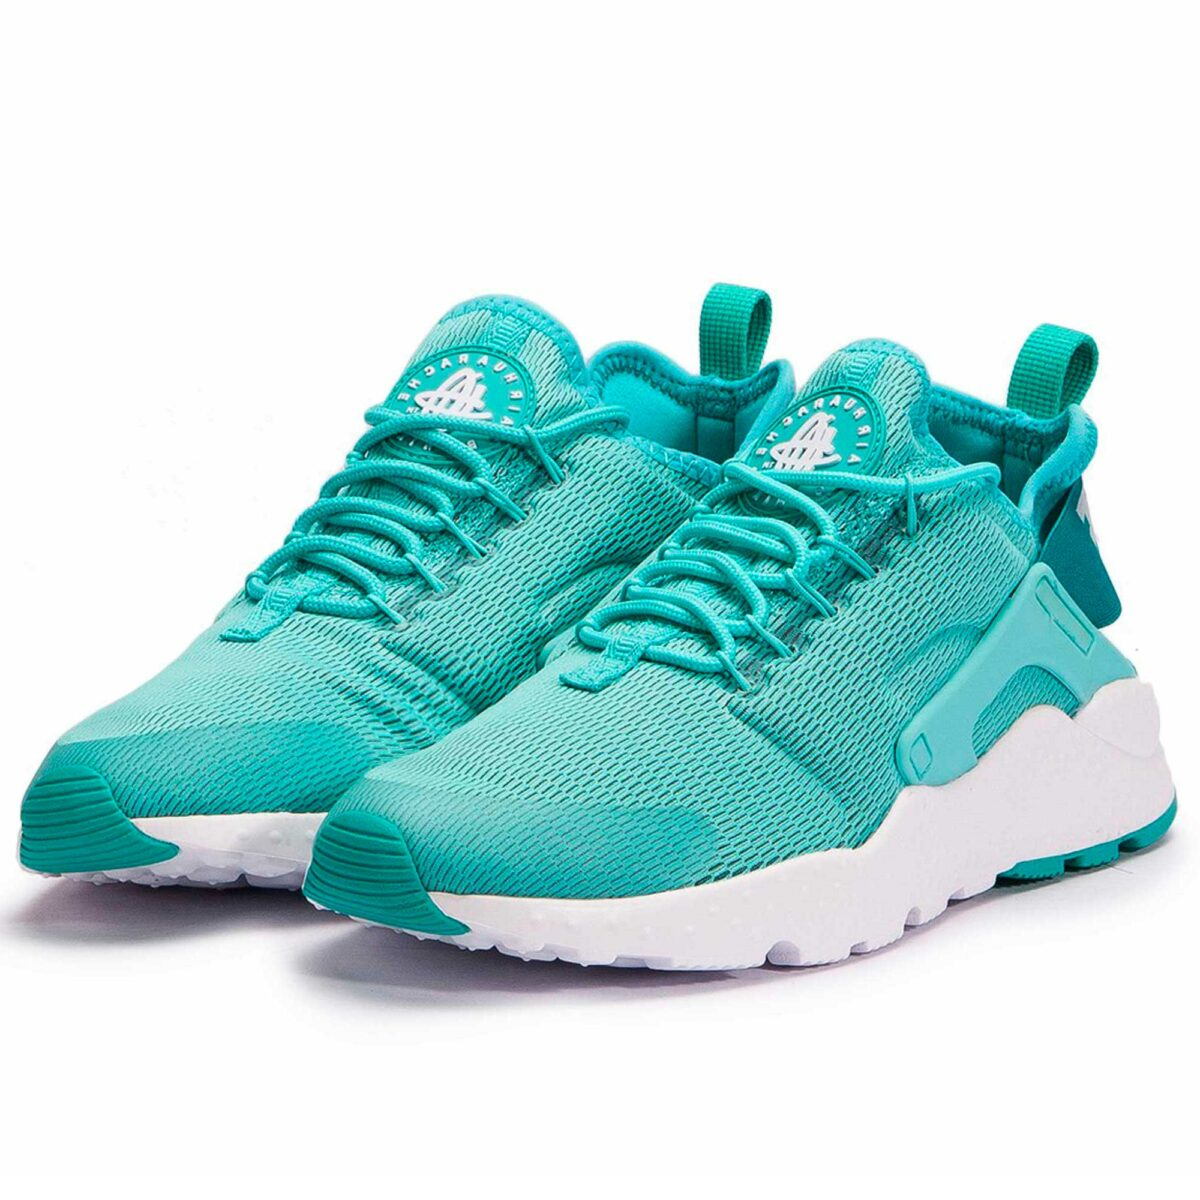 nike air huarache run bright turquoise 819151_300 купить